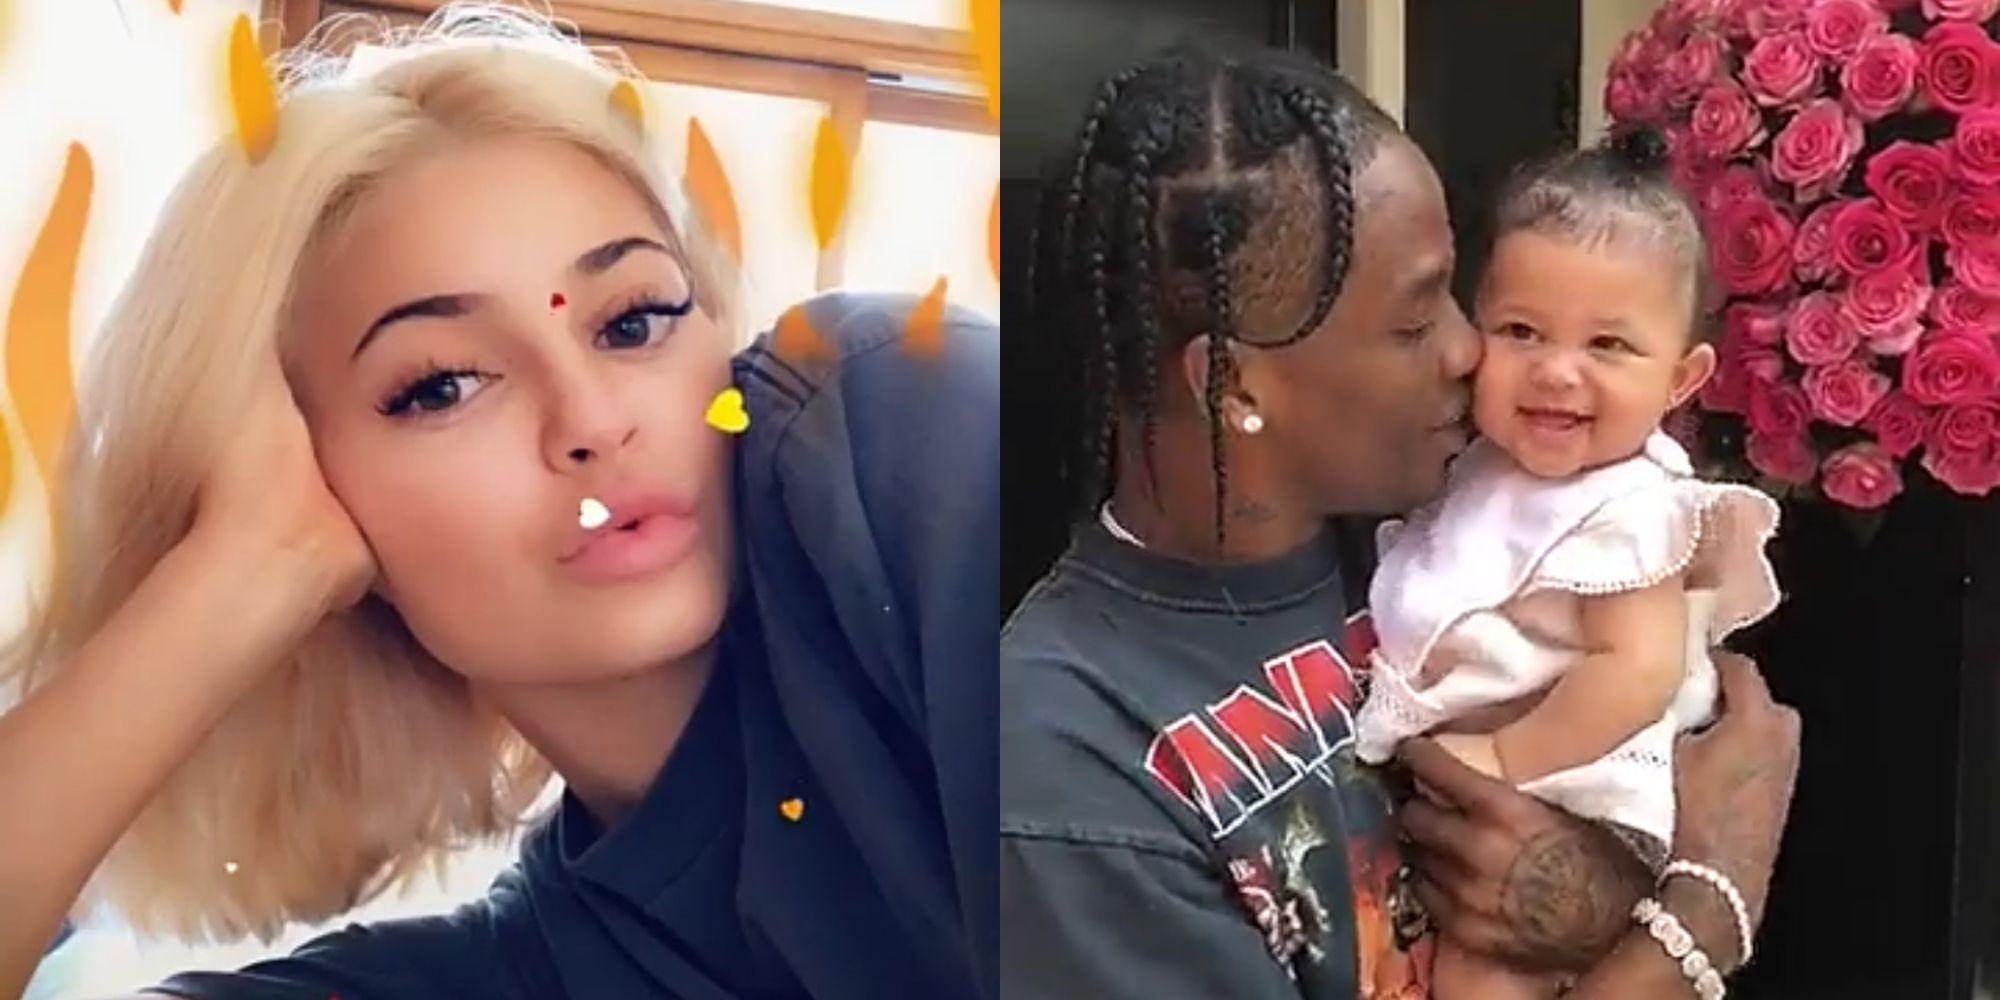 Kylie Jenner's Daughter, Stormi Webster Rocks Her Dad's Merch - Check Out Her Fashion Game